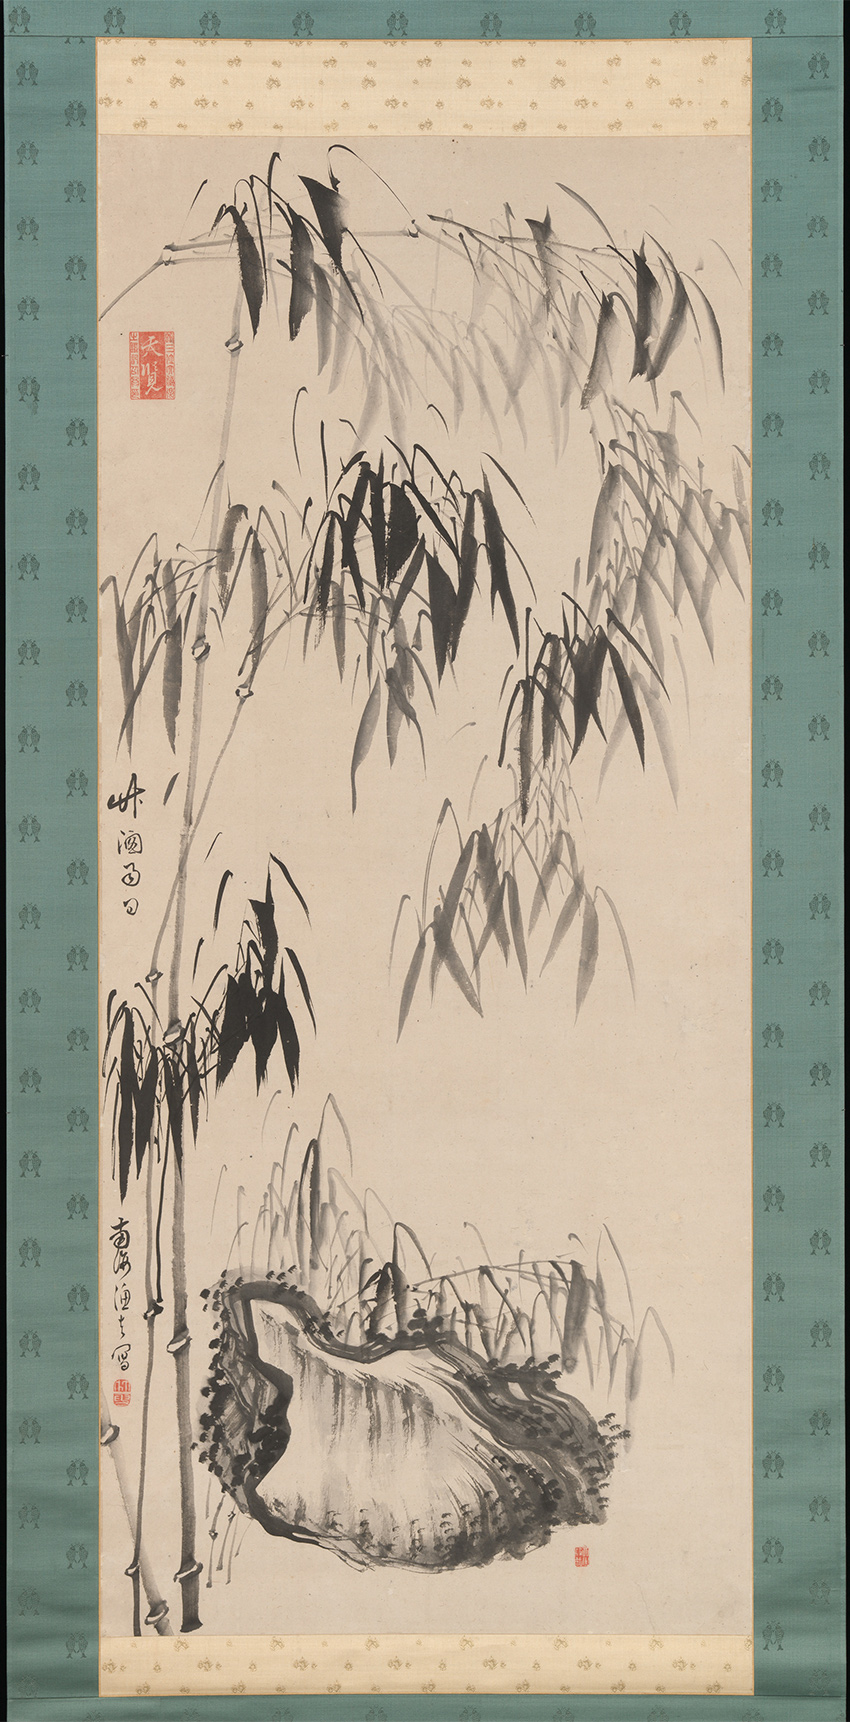 MET-Museum_-Kyoto_Window-onto-Bamboo-on-a-Rainy-Dayfirst-half-of-the-18th-century_DP-10807-115_850